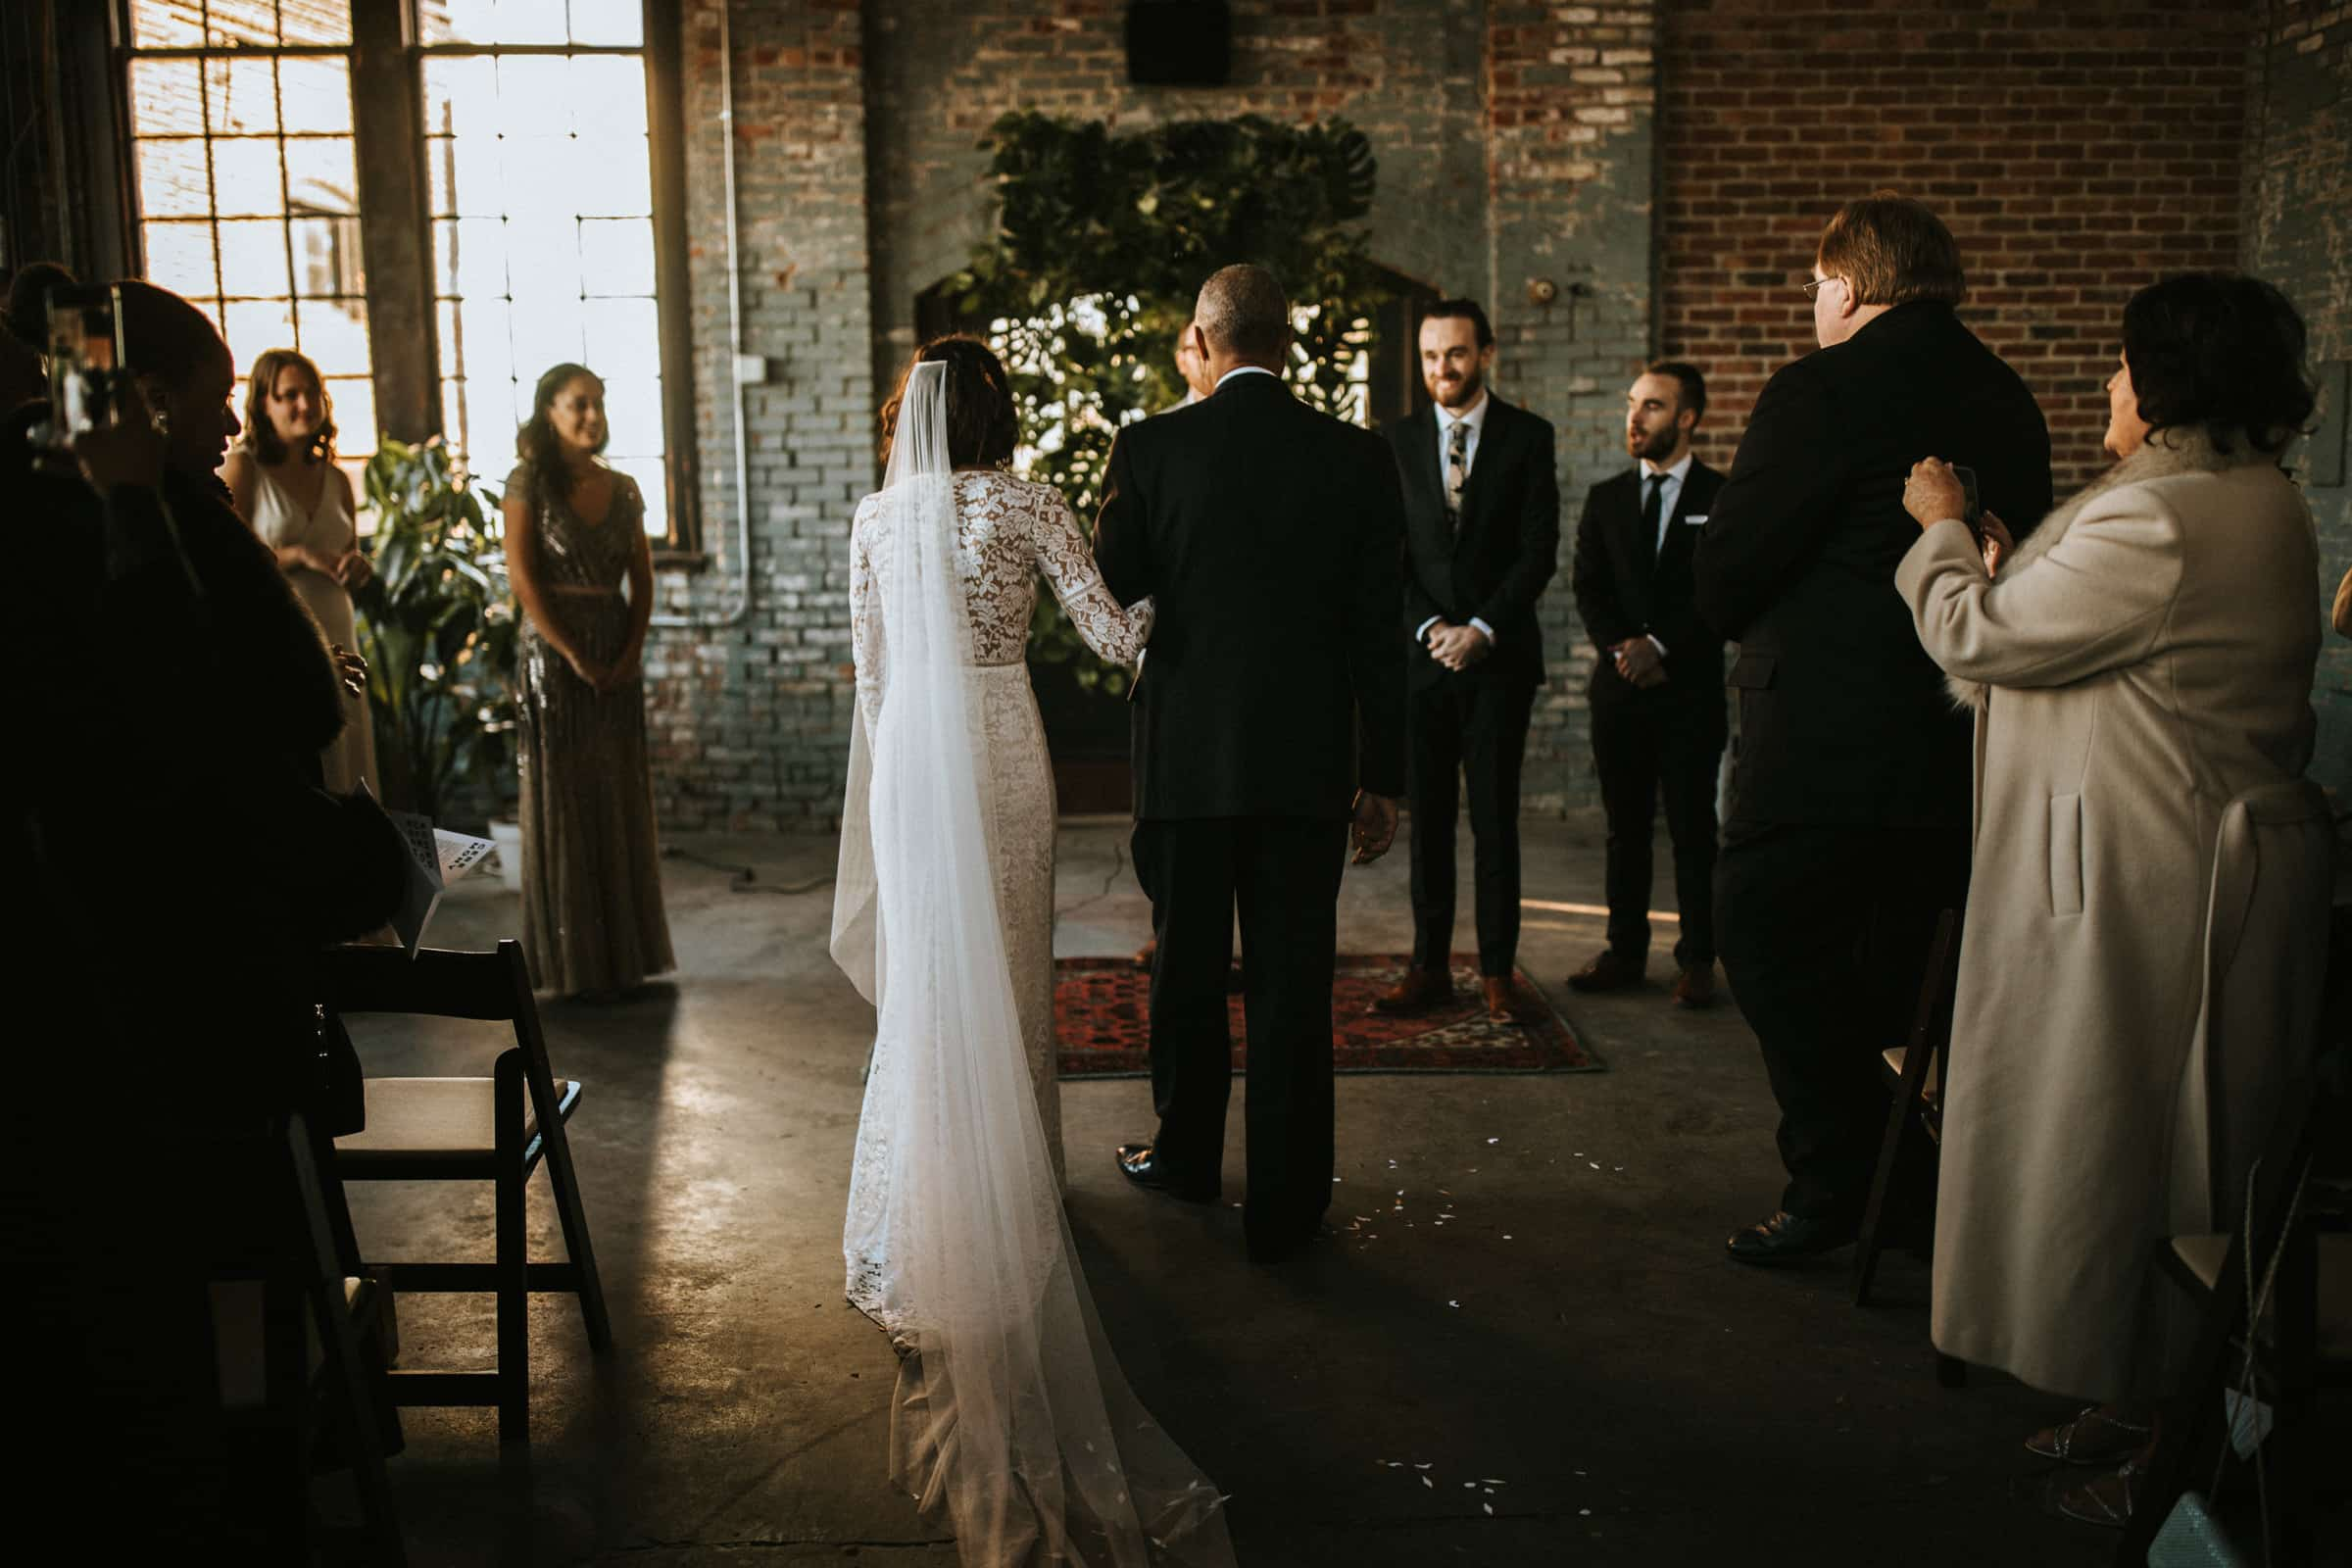 The bride and her father are standing at the end of the aisle.